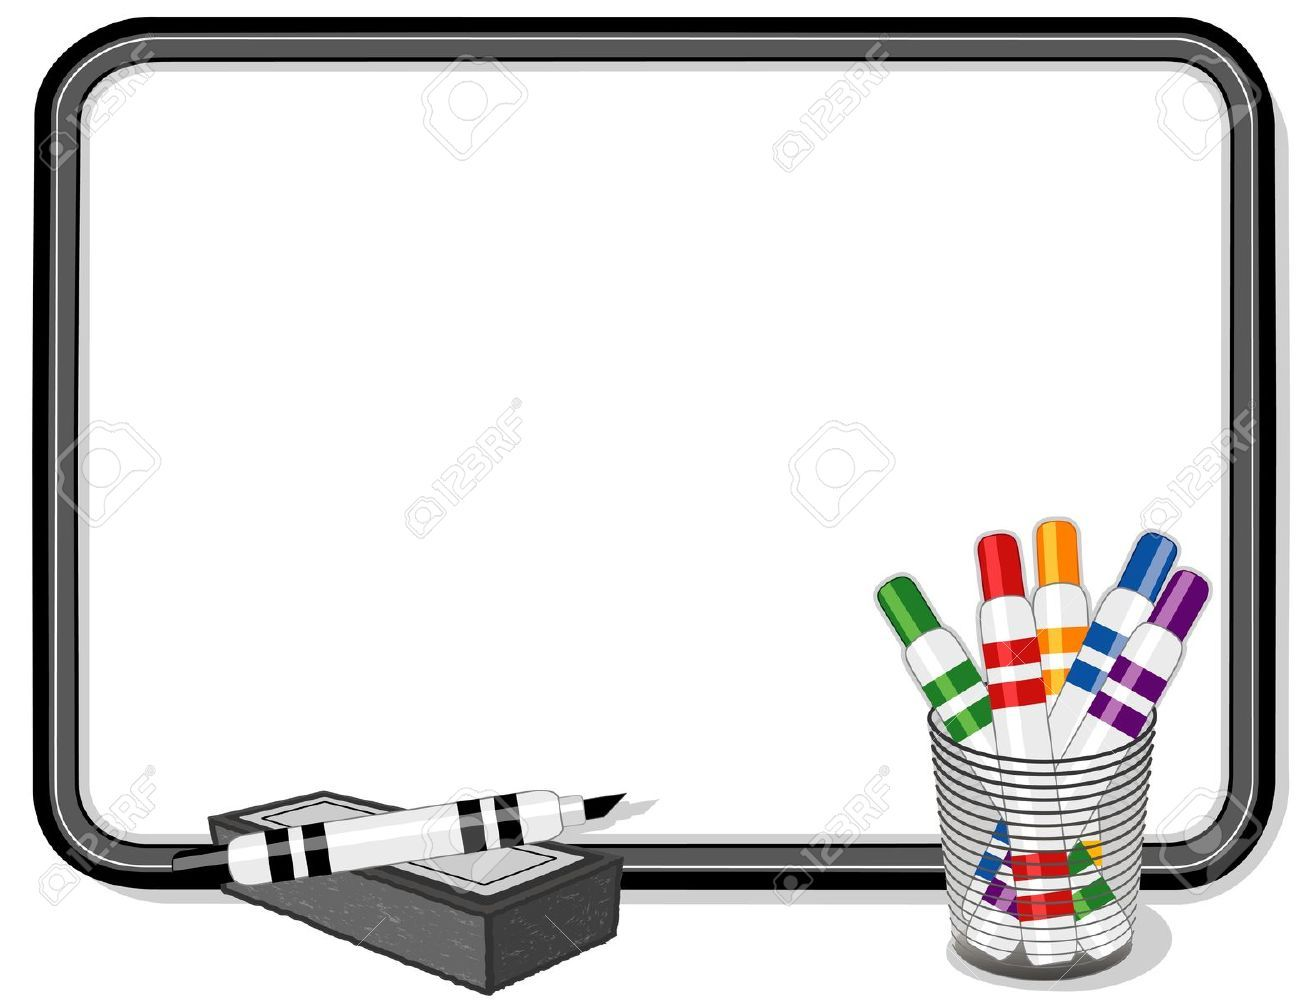 Whiteboard With Multicolor Marker Pens Royalty Free